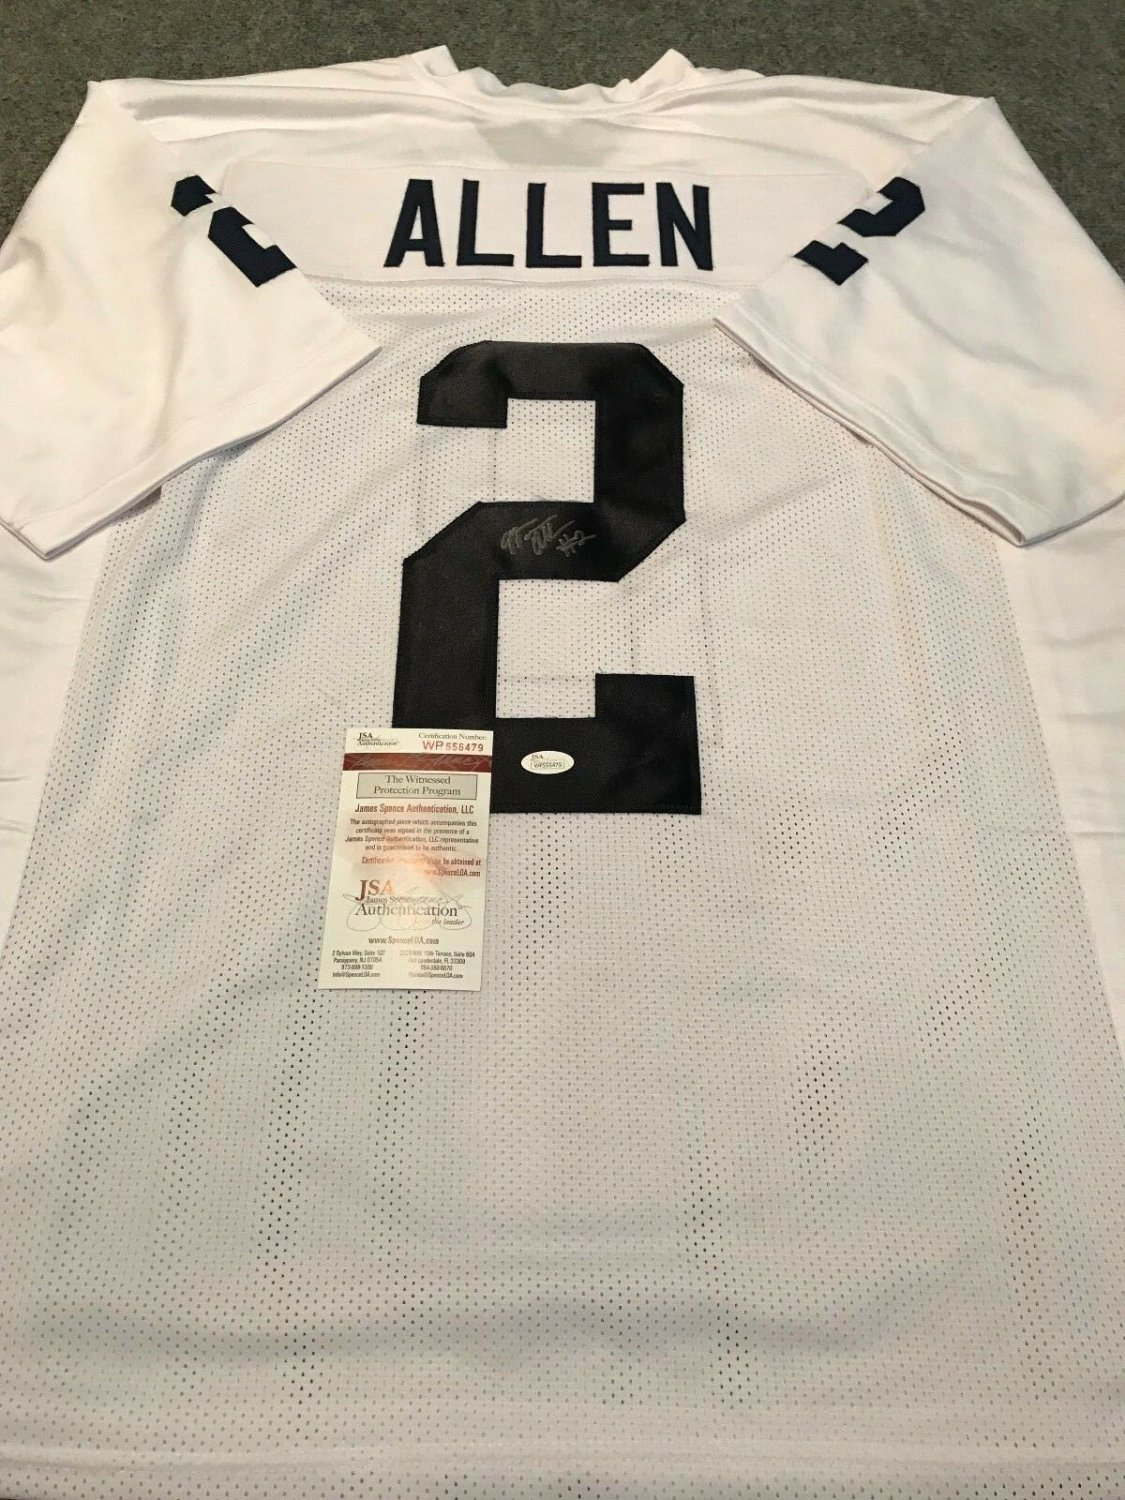 new styles 3e75b 516a9 Marcus Allen Autographed Signed Penn State Jersey - JSA ...